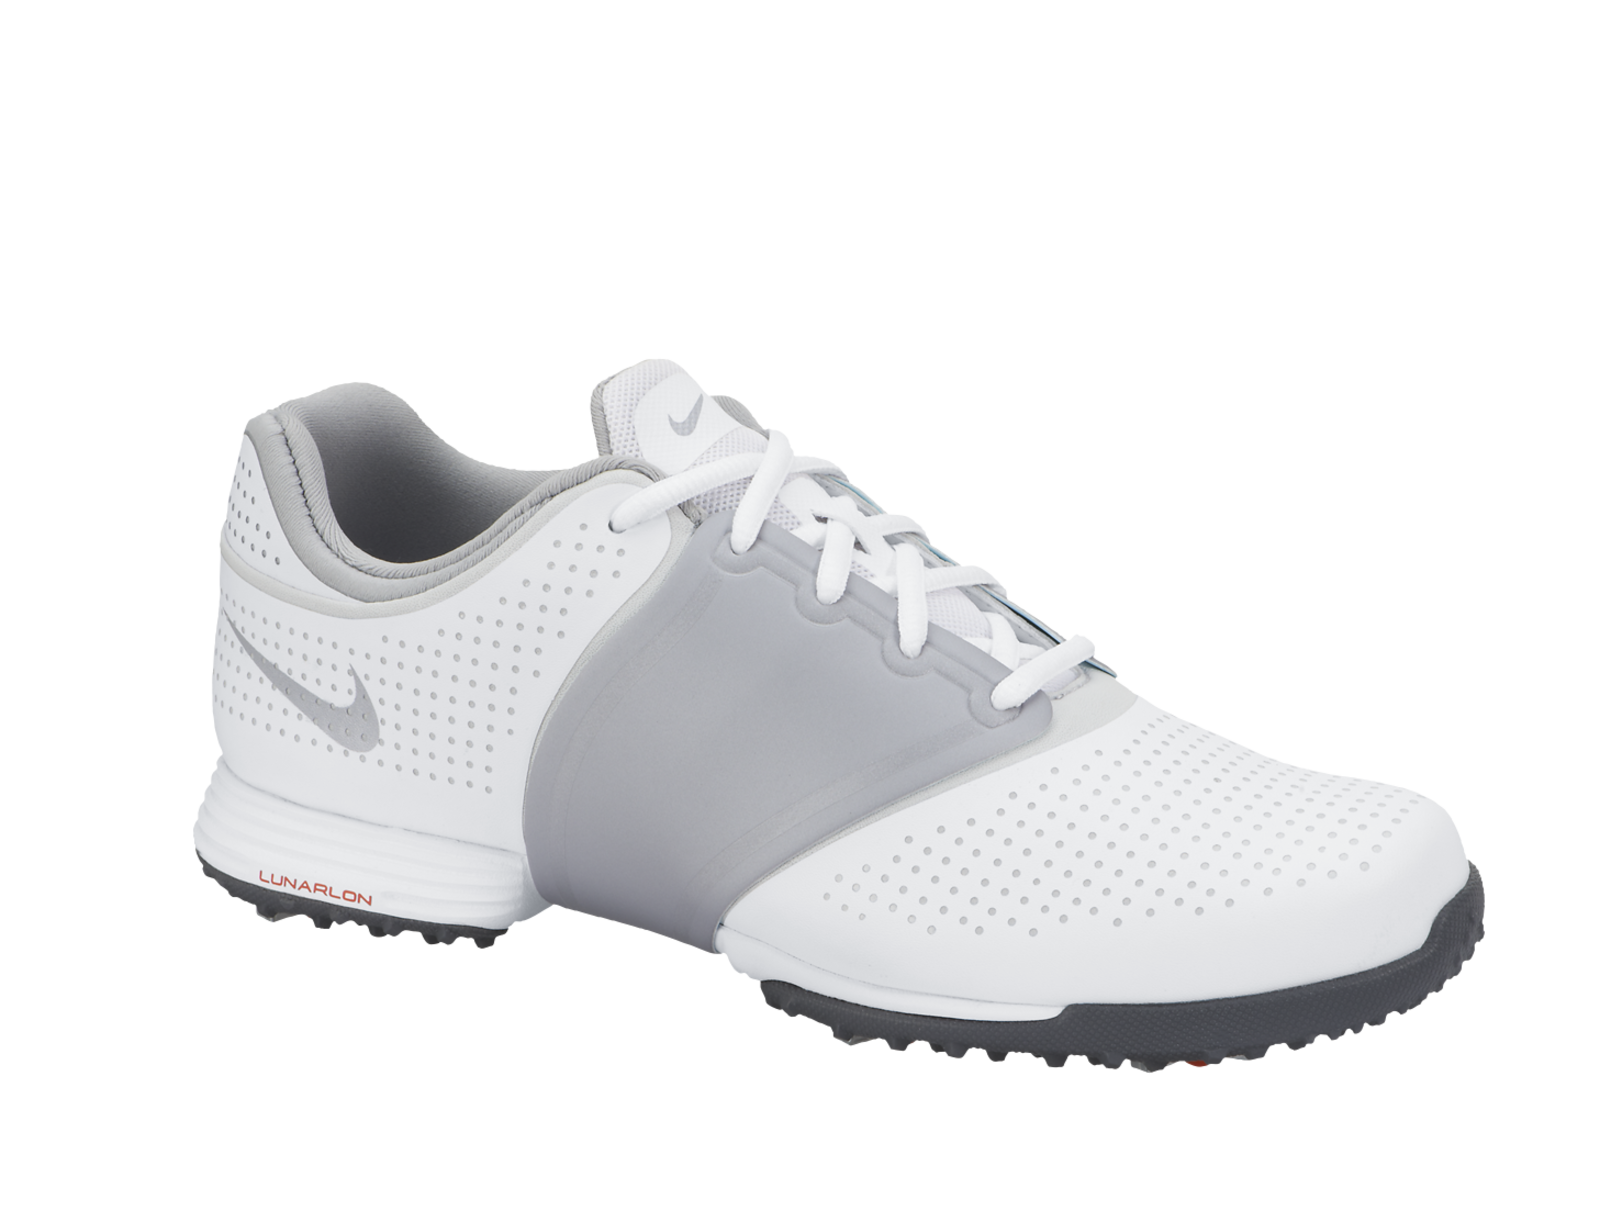 Excellent Nike Womens Lunar Links Golf Shoes White/Grey - Carlu0026#39;s Golfland